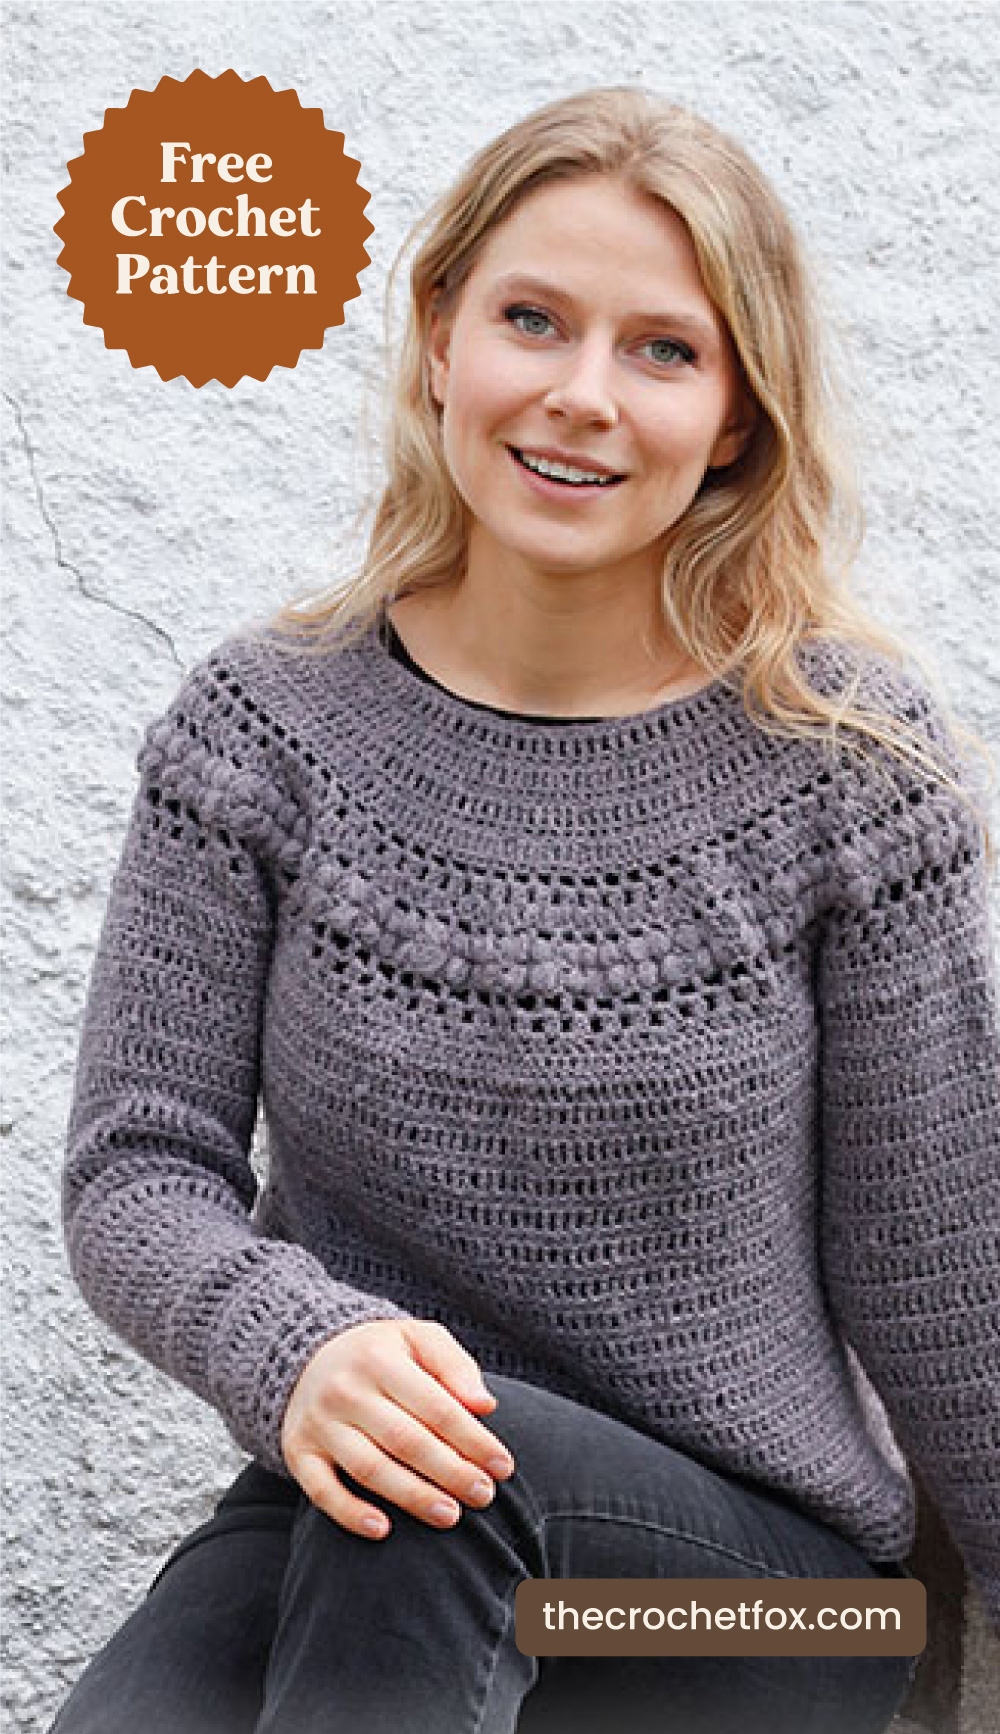 """Text area which says """"Free Crochet Pattern"""" next to a blonde woman sitting comfortably while wearing a gray crochet sweater with a yoke design followed by another text area which says """"thecrochetfox.com"""""""